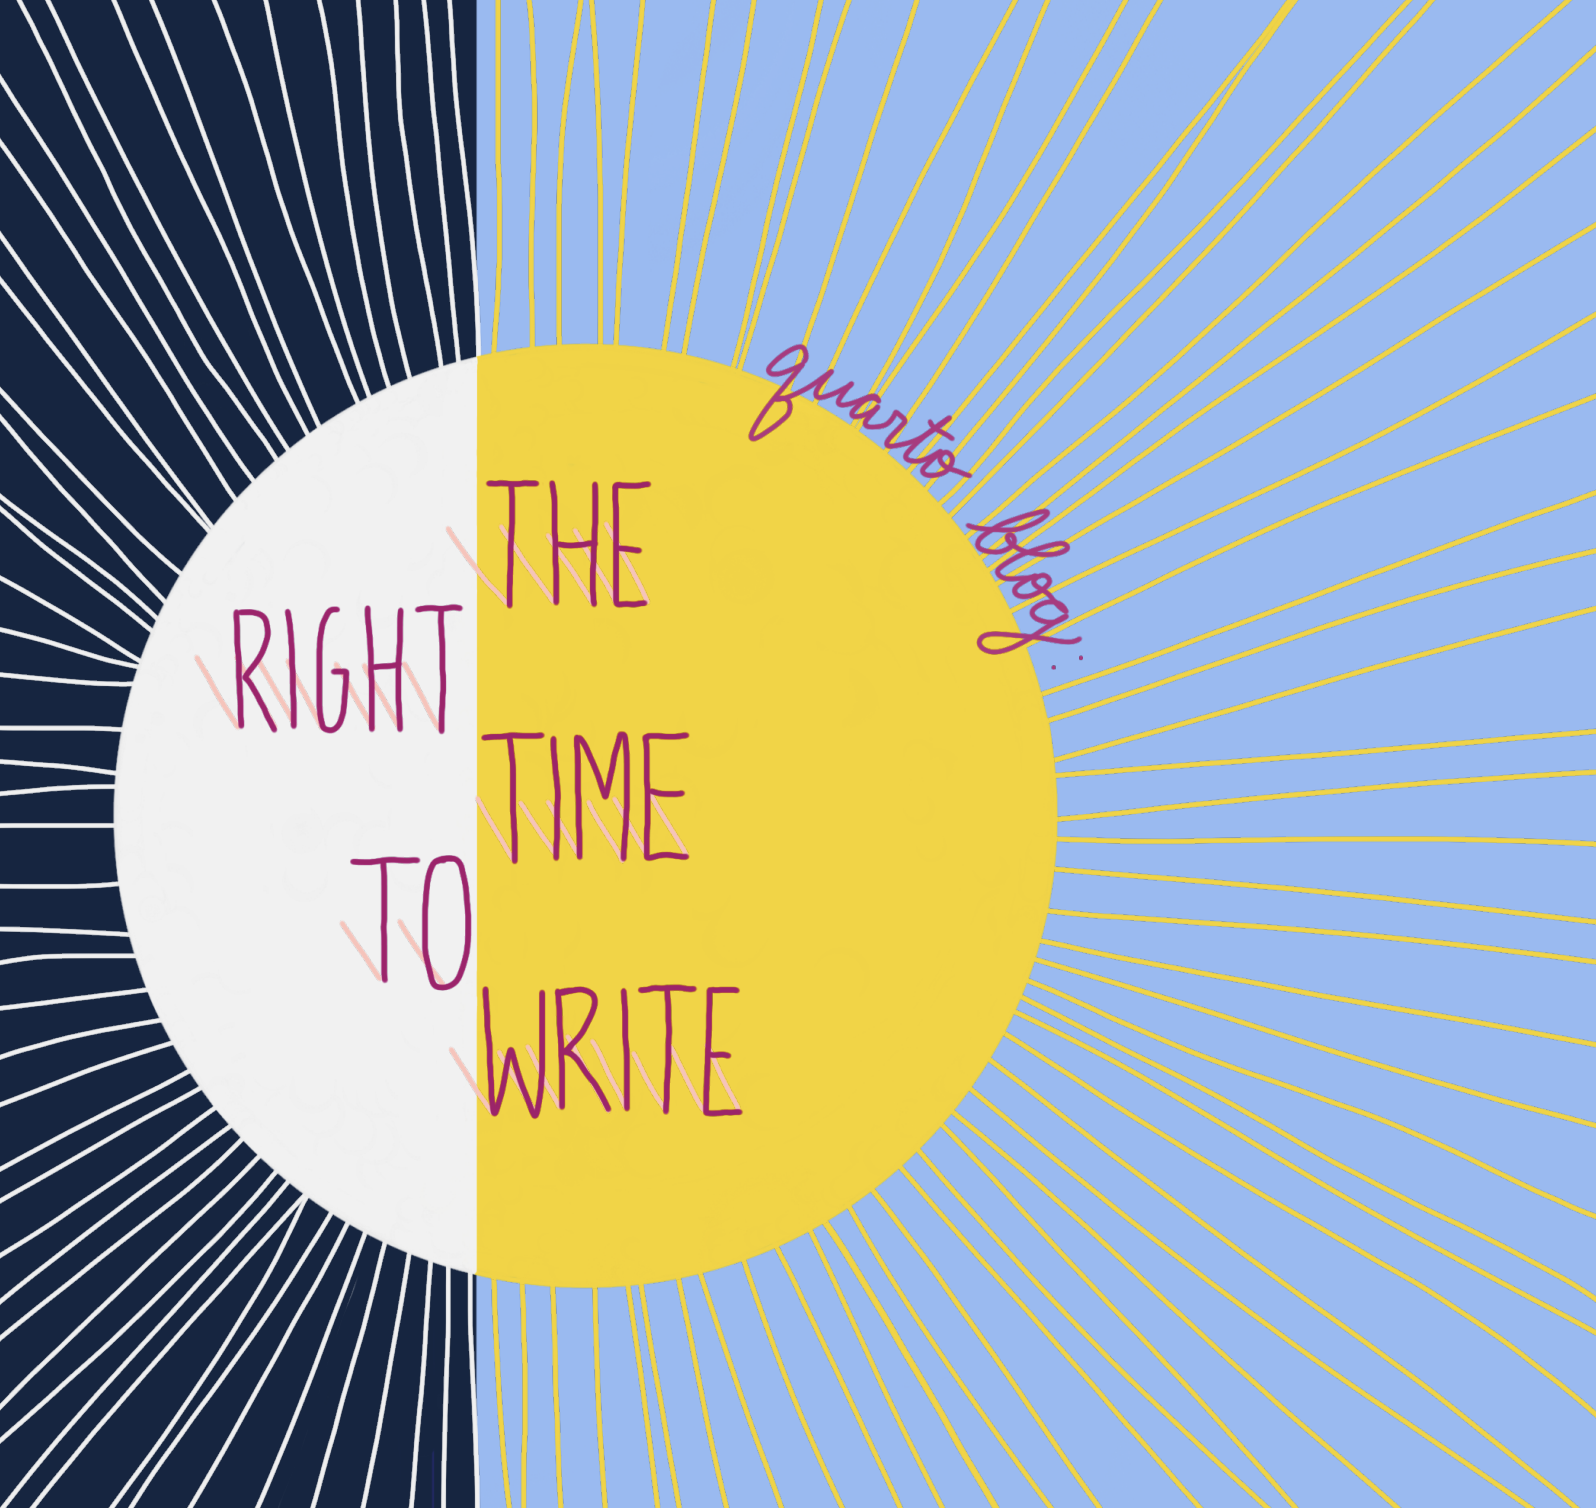 The Right Time to Write  by Tamarah Wallace  Writing for me had always turned into a lengthy affair, similar to binge watching a show, where it became difficult to find any suitable stopping place. Since I felt that I had to carve out hours and hours at a minimum for this activity, I would neglect to put it on my schedule, and sometimes wouldn't even be in the mindset to write during the time I scheduled…Here are other ways Quarto kids make time for writing: